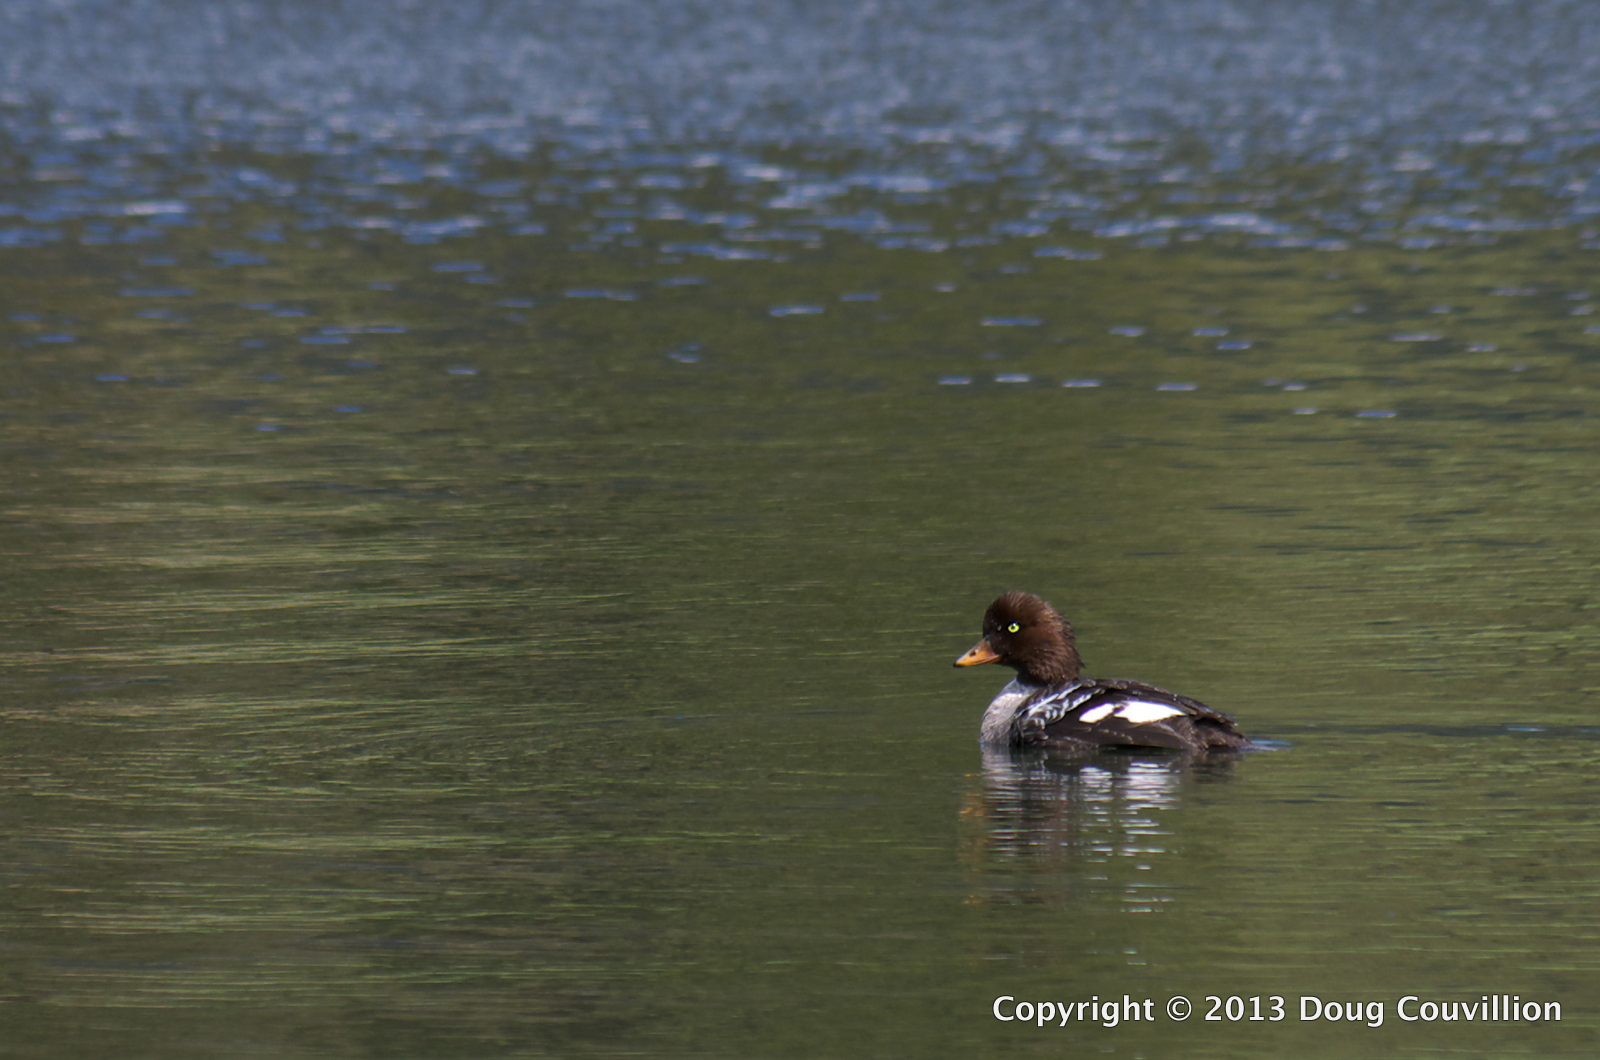 photograph of a female Barrow's Goldeneye duck on Trout Lake in Yellowstone National Park, WY